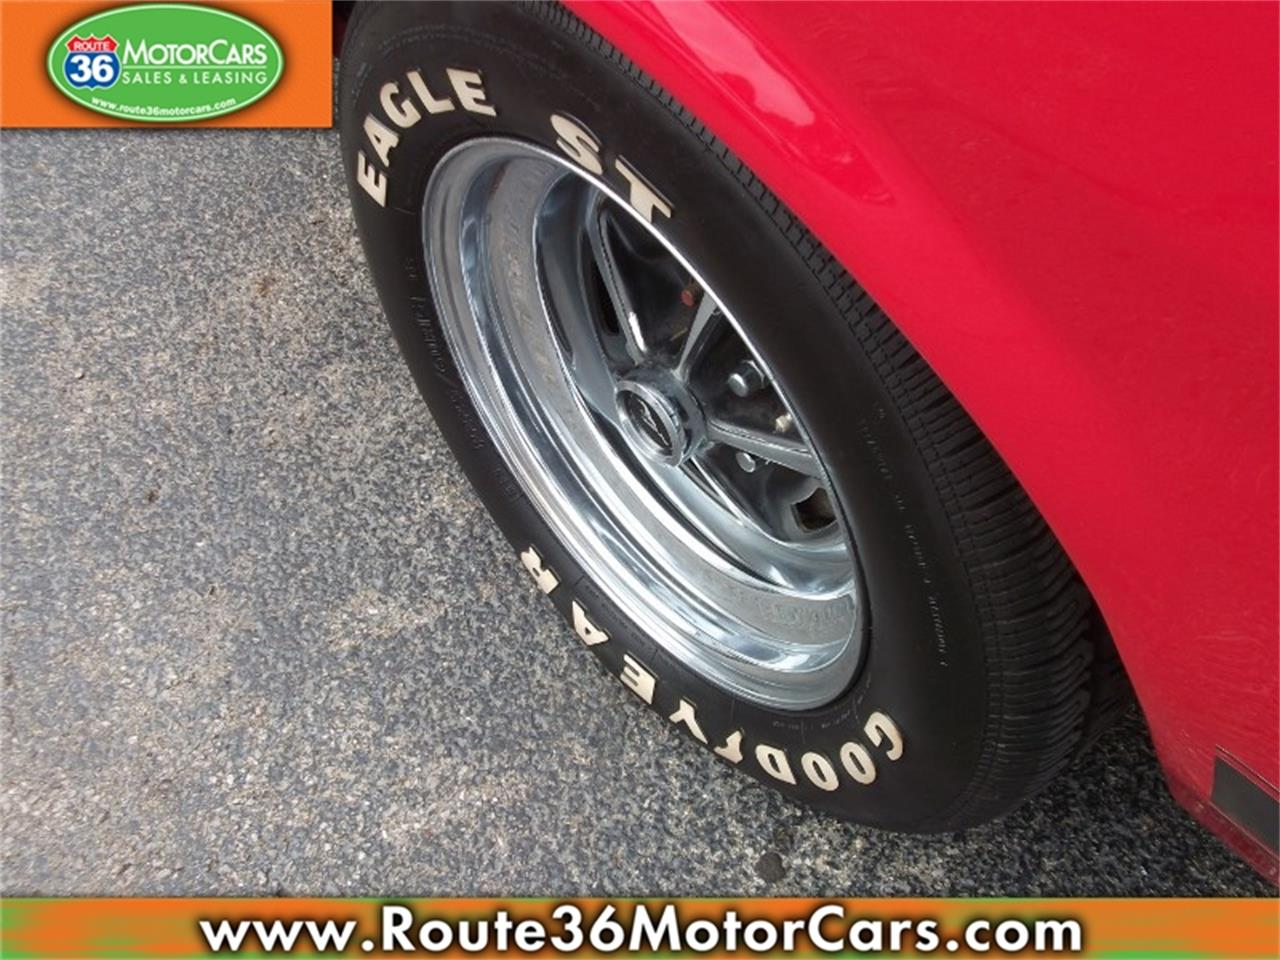 Large Picture of 1970 Ford Mustang located in Ohio Offered by Route 36 Motor Cars - PBL3